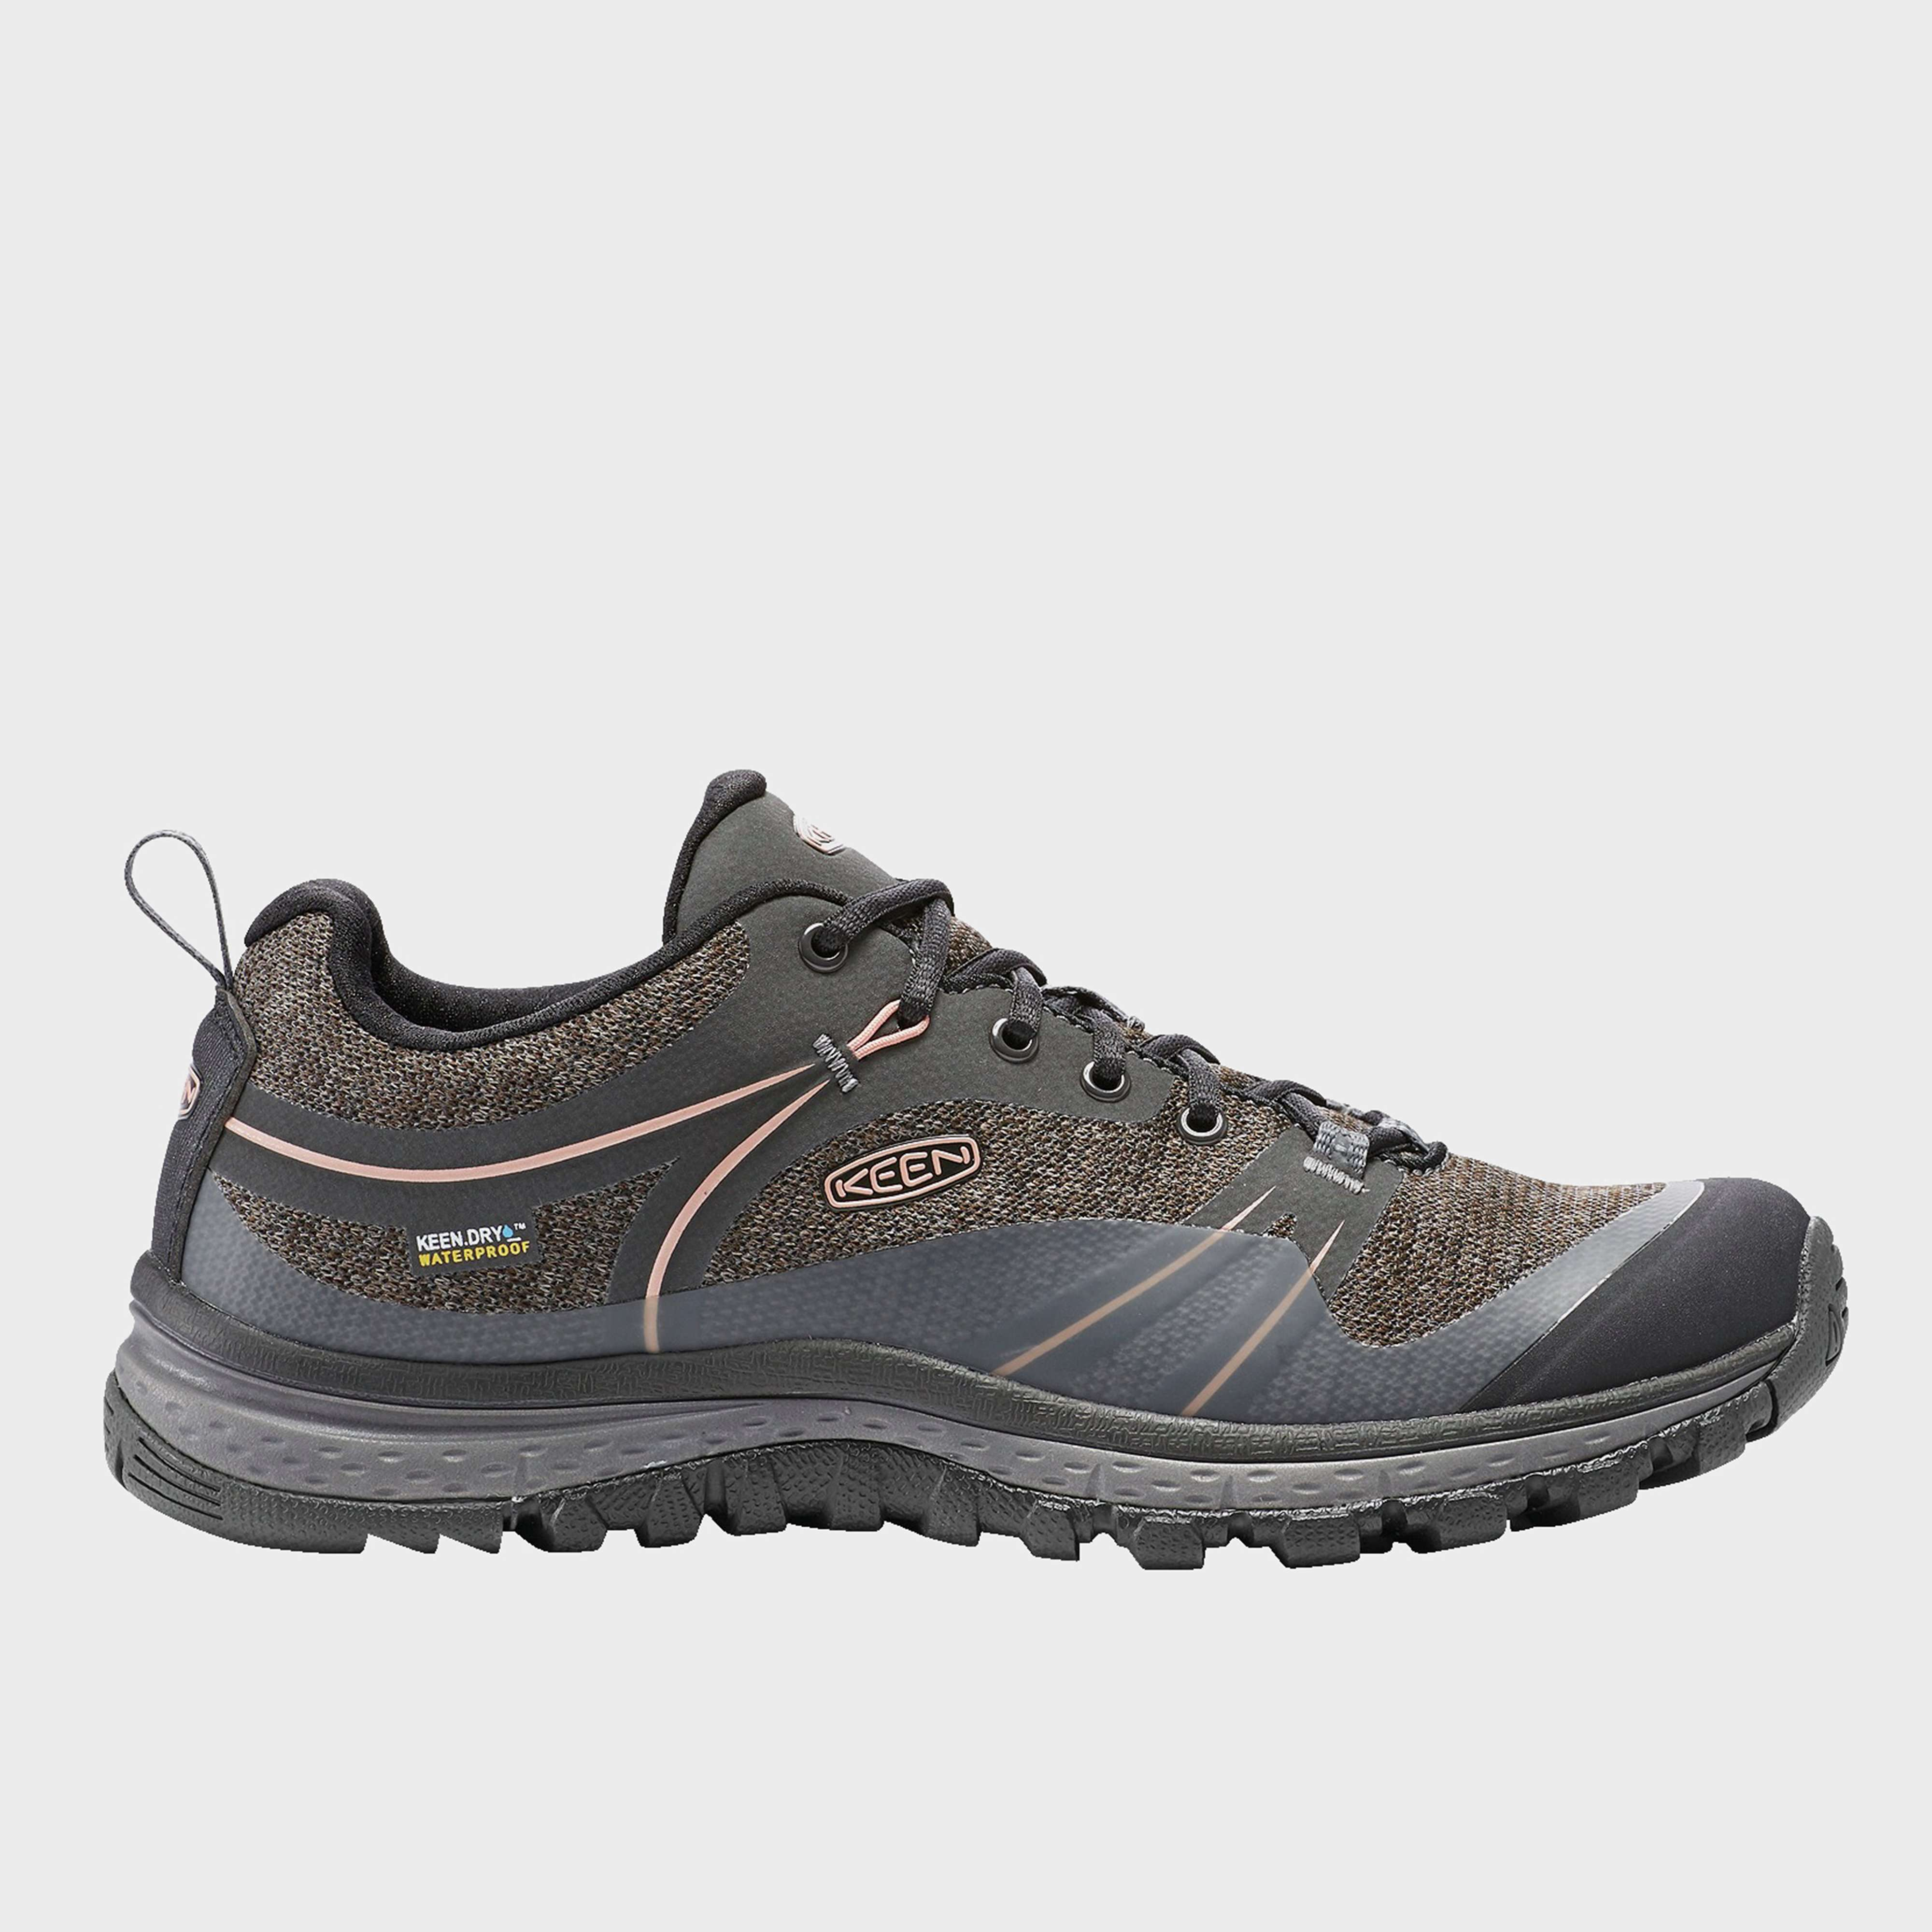 KEEN Women's Terradora Waterproof Hiking Shoe